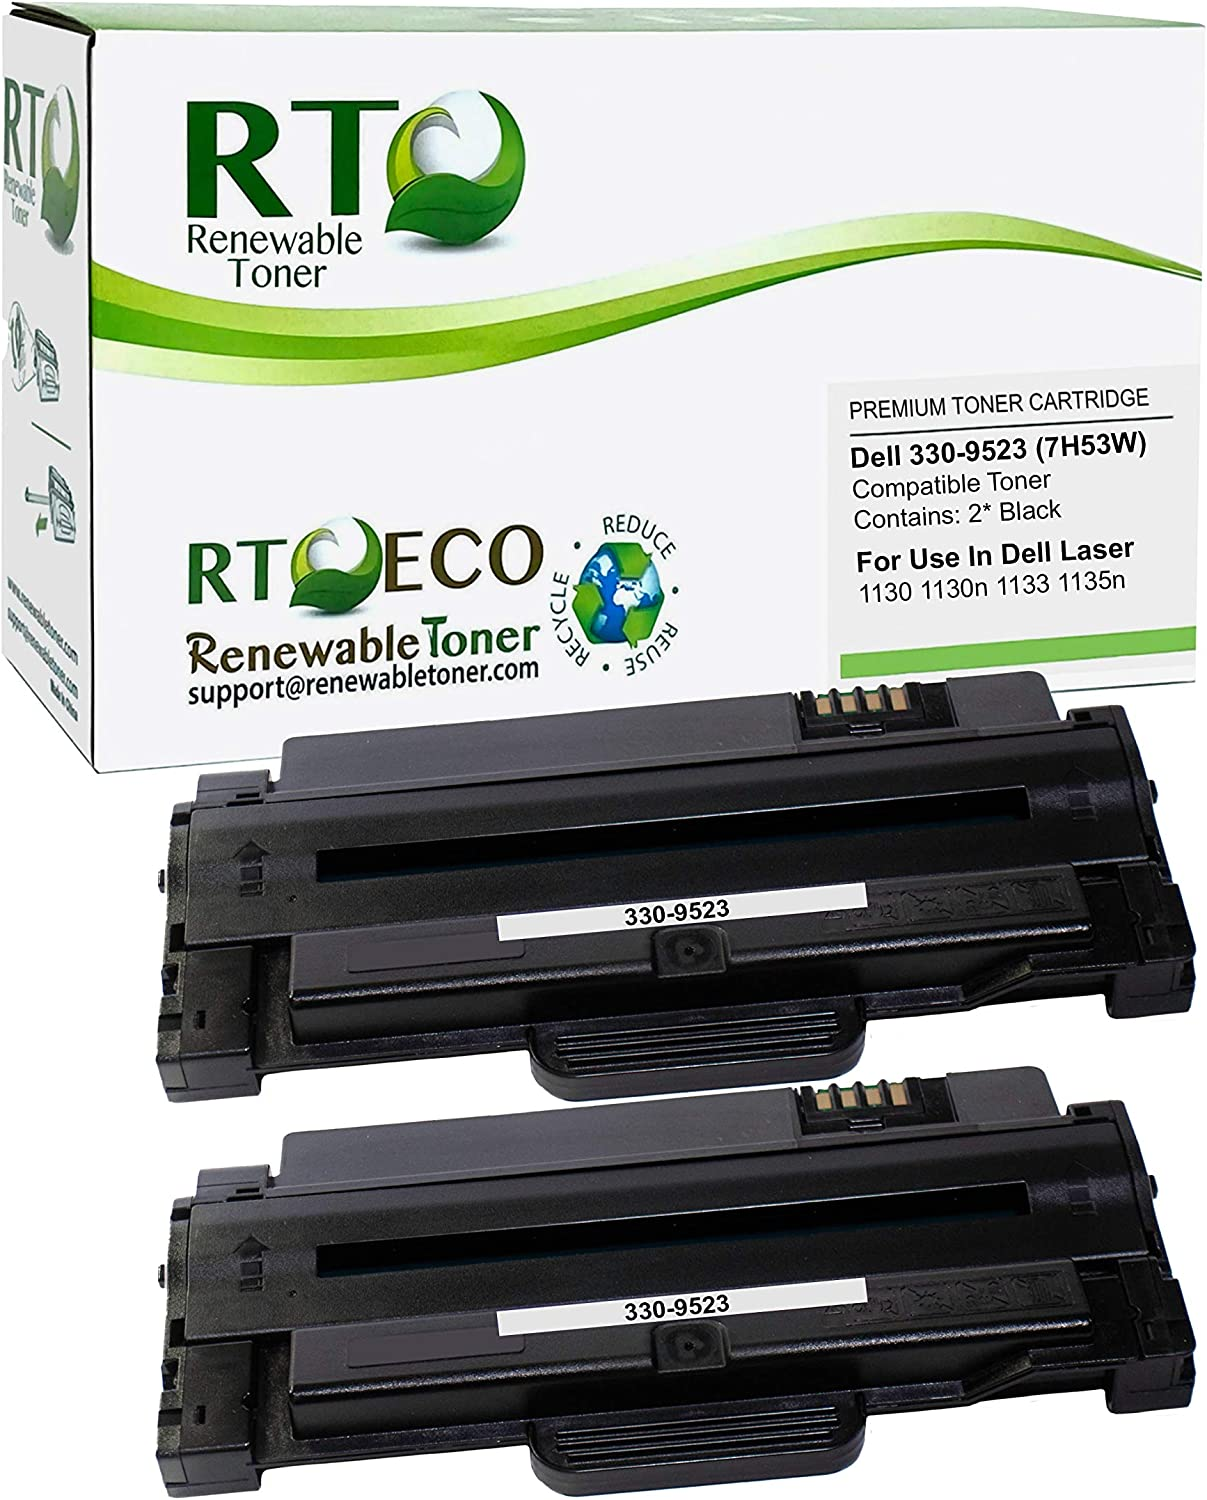 Renewable Toner Compatible Toner Cartridge Replacement for Dell 330-9523 7H53W Laser 1130 1130n 1133 1135n (Pack of 2)